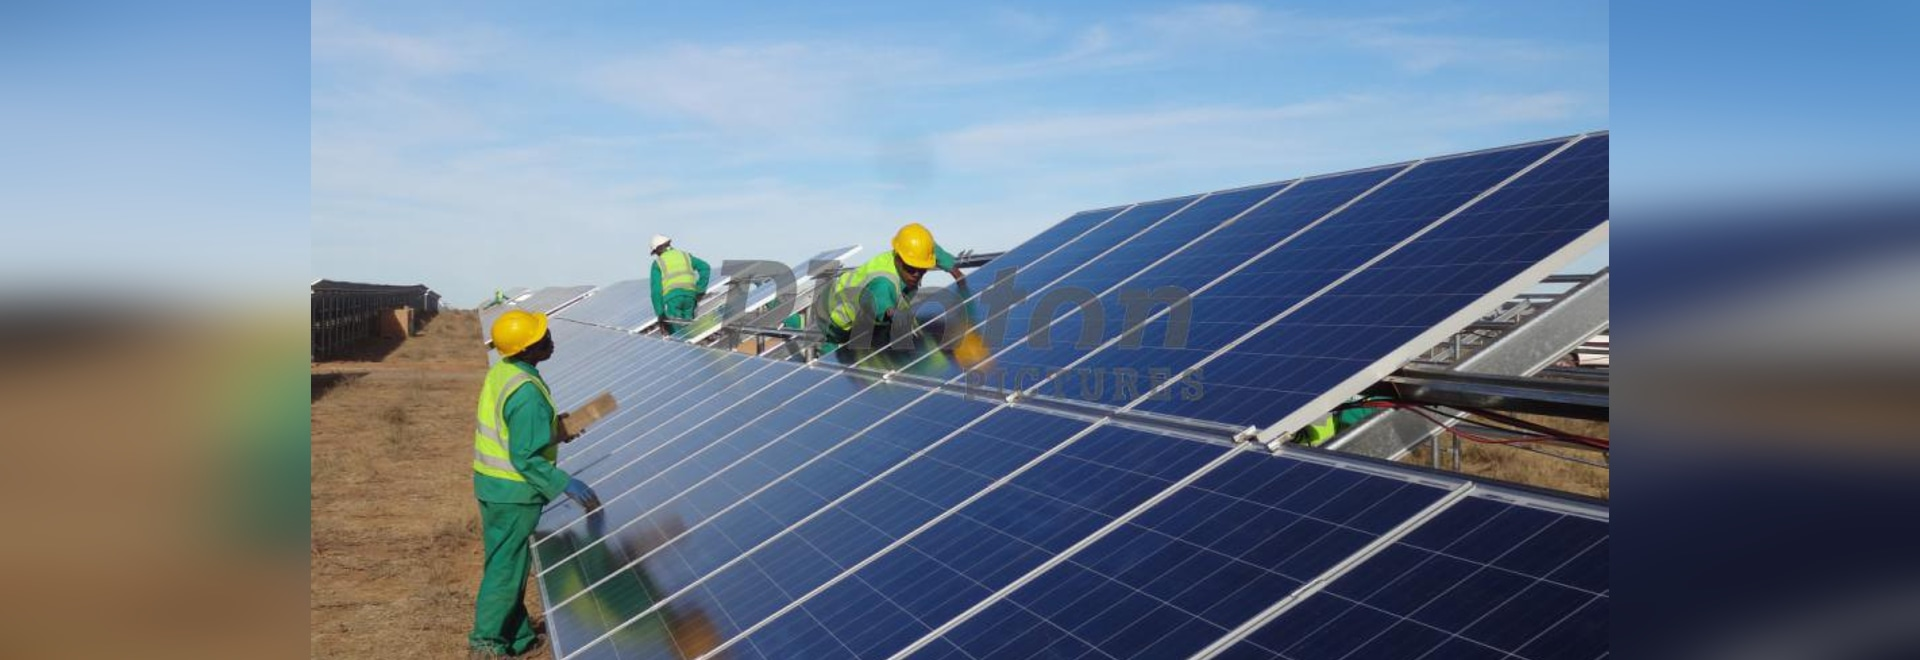 Scatec Solar's consolidated net profit dropped in second quarter of 2019 yoy